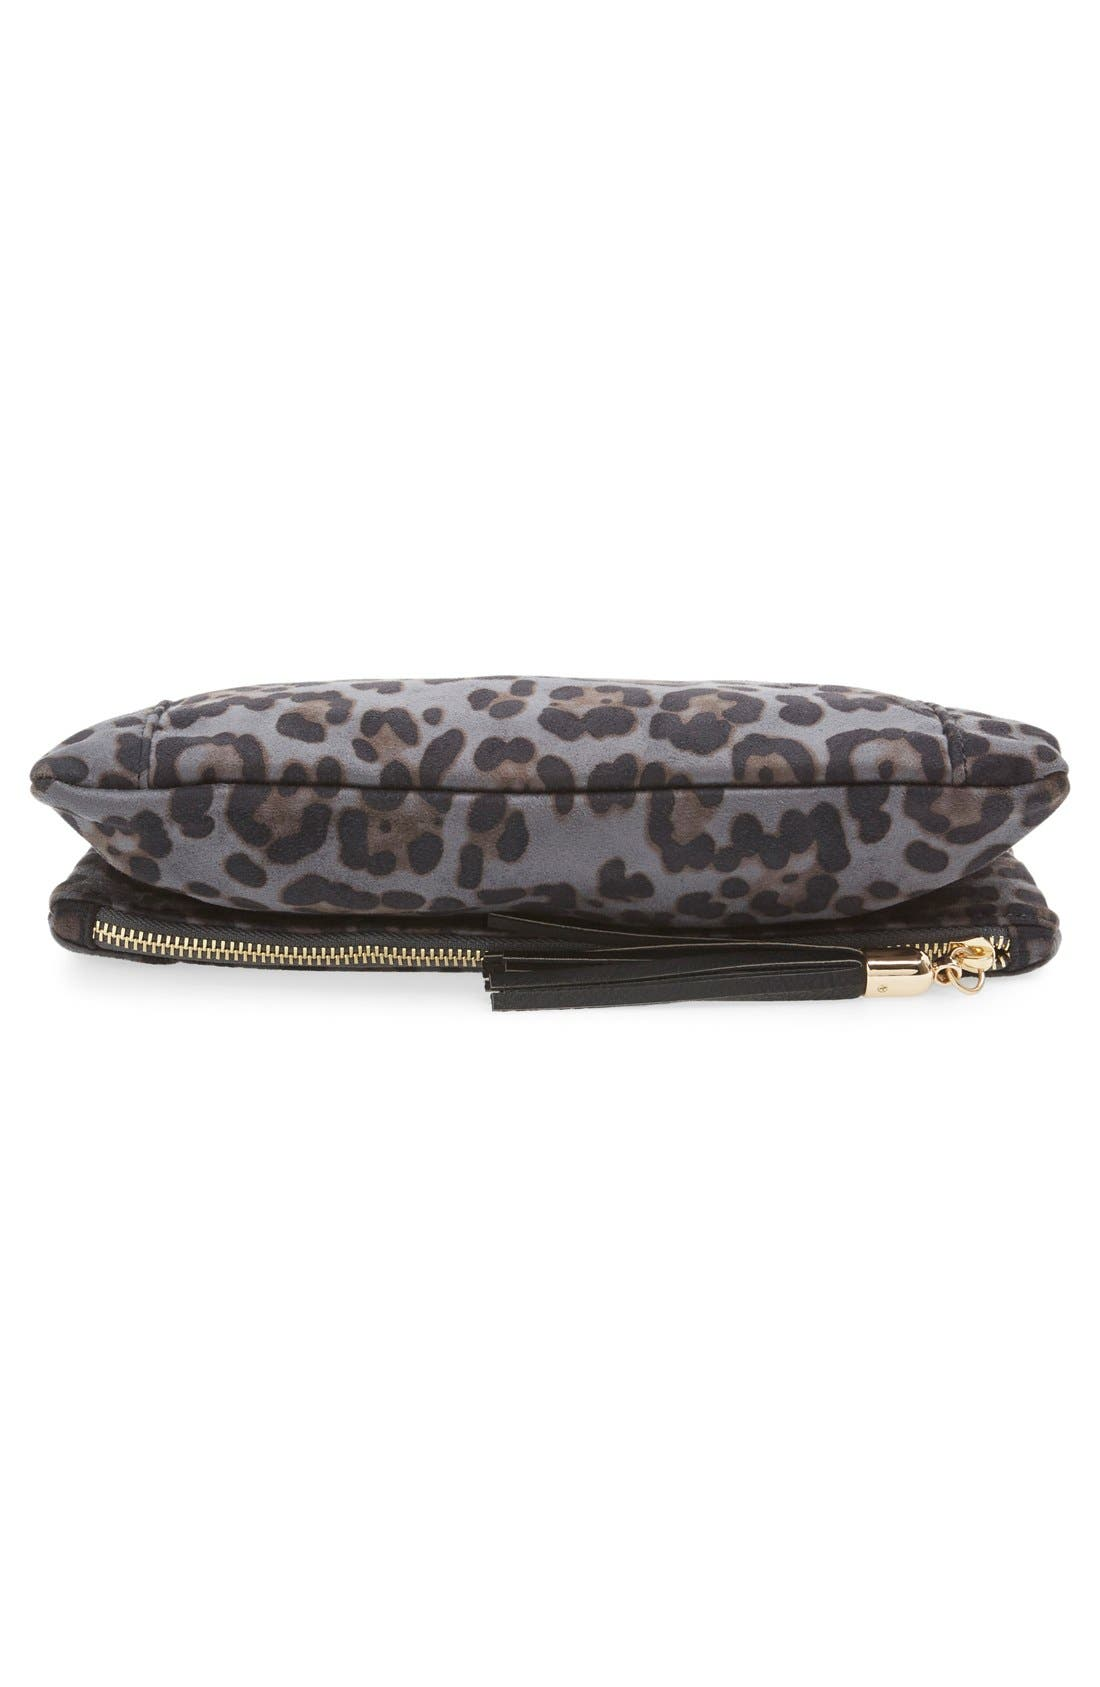 'Tasia' Print Foldover Clutch,                             Alternate thumbnail 7, color,